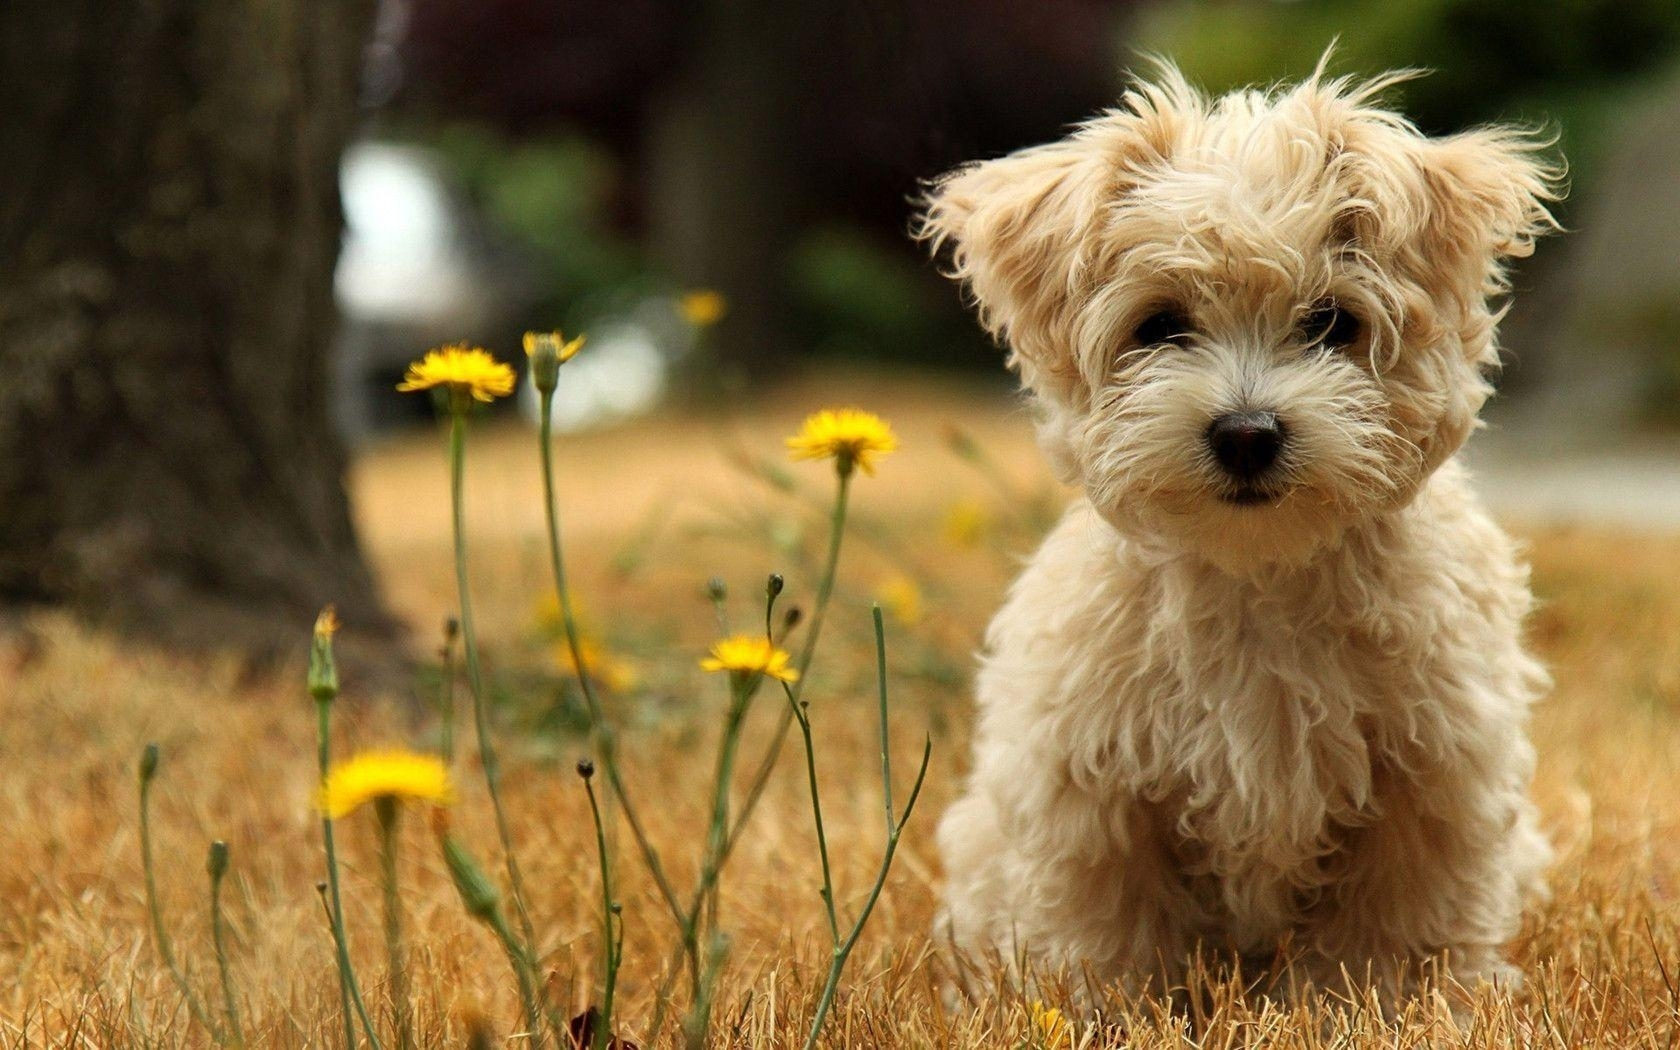 cute puppy desktop wallpapers - wallpaper cave